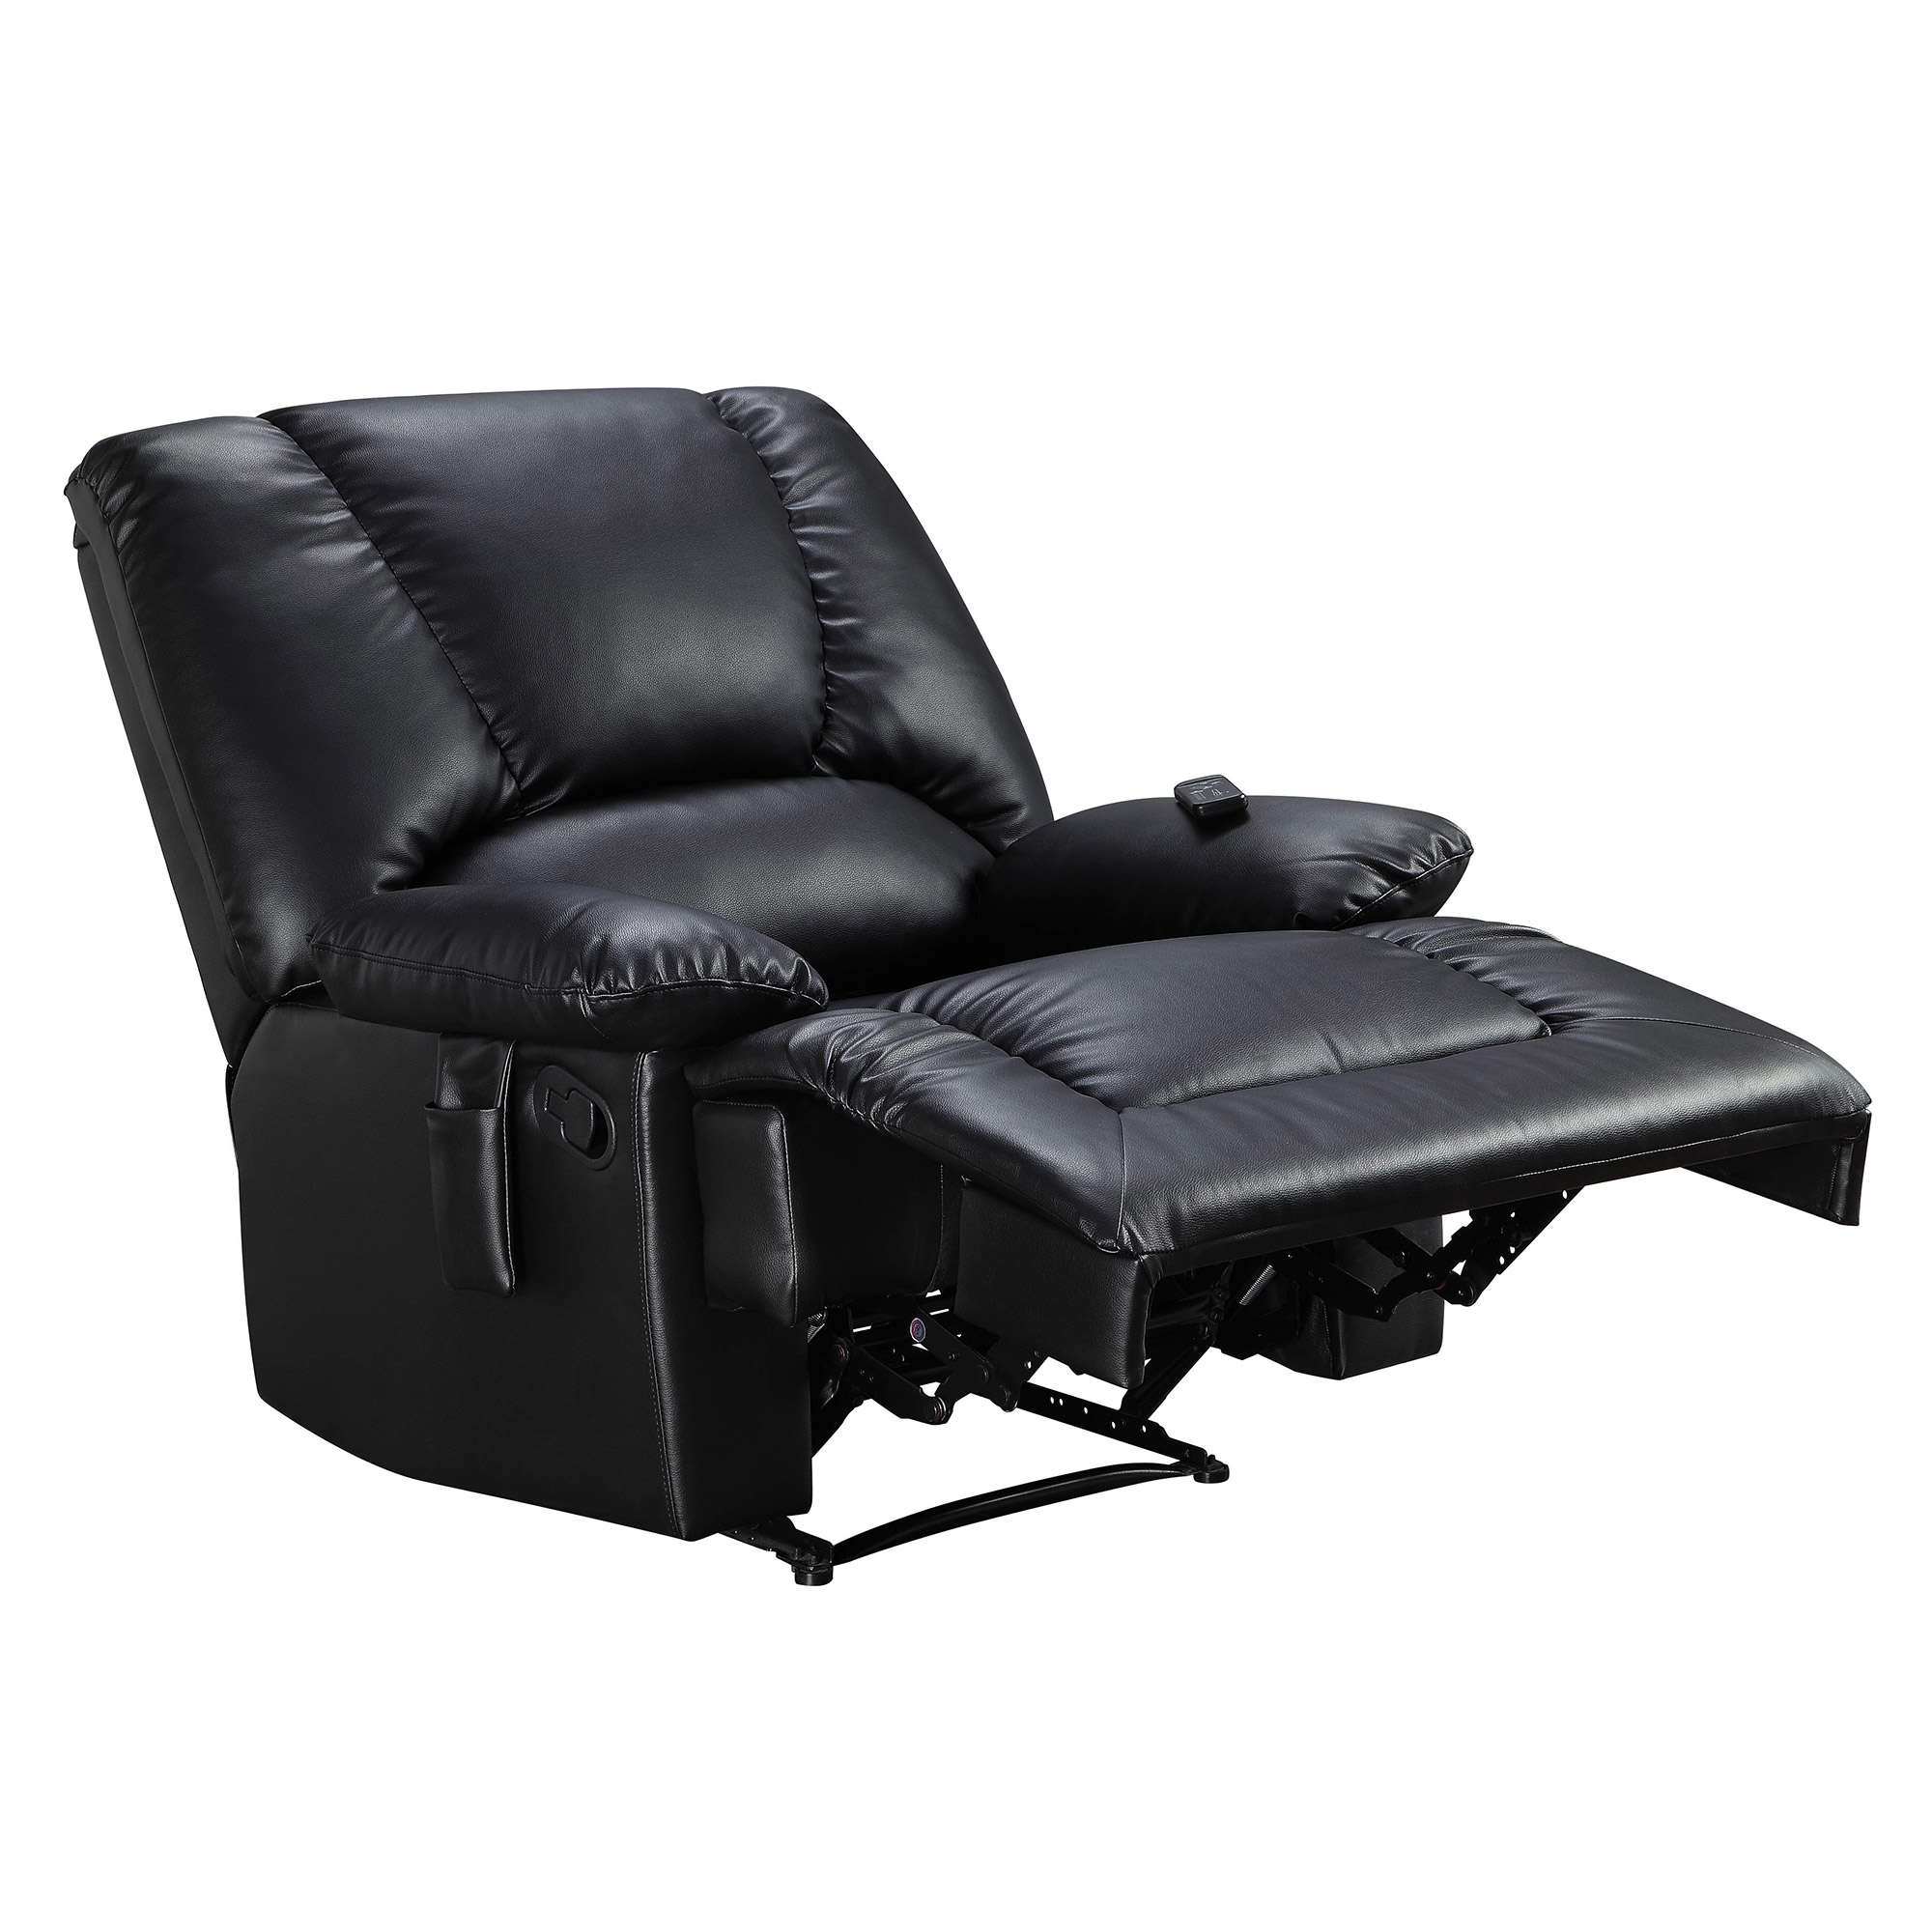 bonded classic ip single com walmart serta oversize seat recliner and overstuffed chair leather